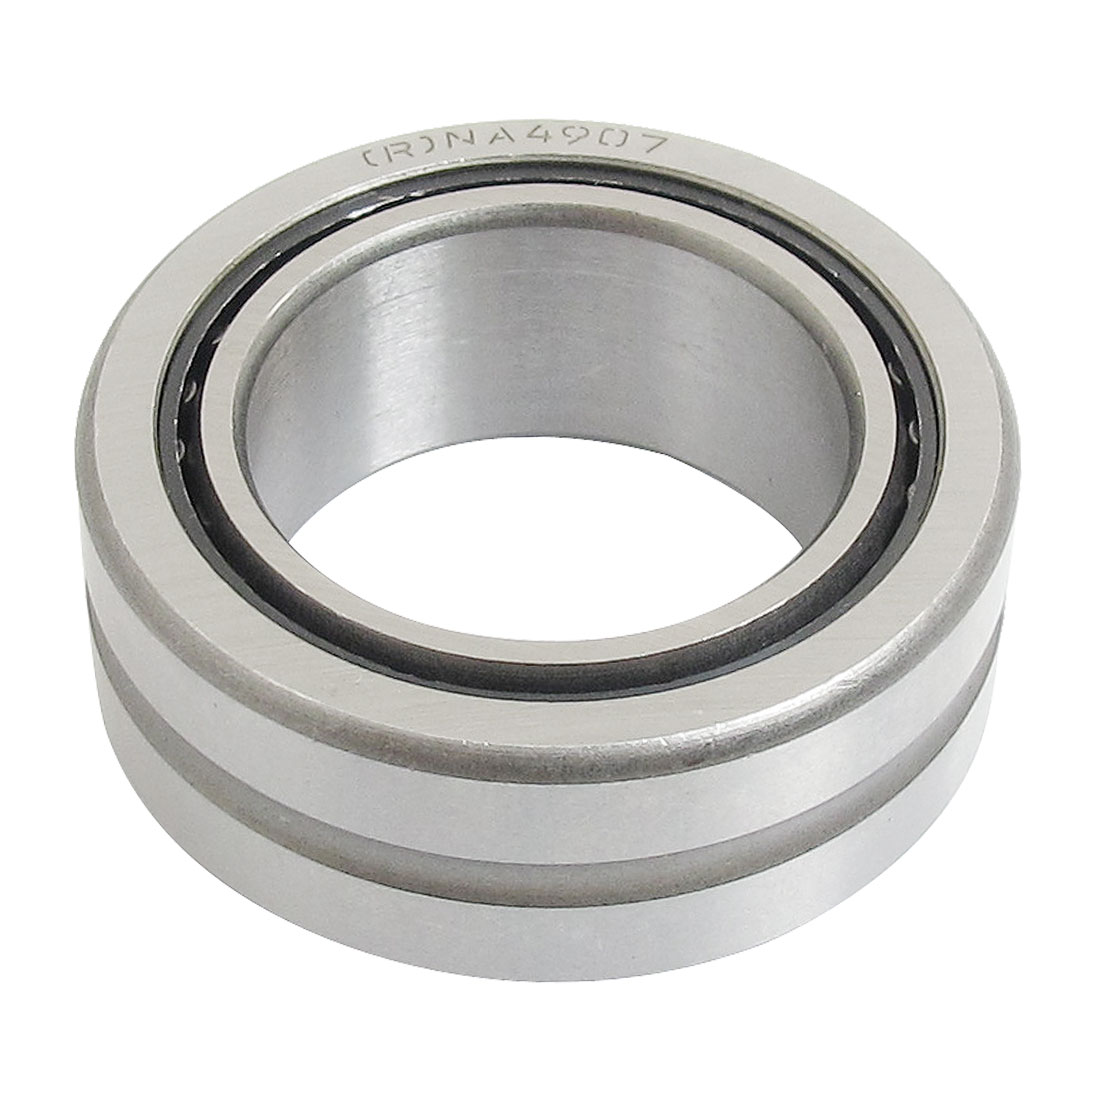 NA4907 35 x 55 x 20mm Drawn Cup Caged Drawn Cup Needle Roller Bearing